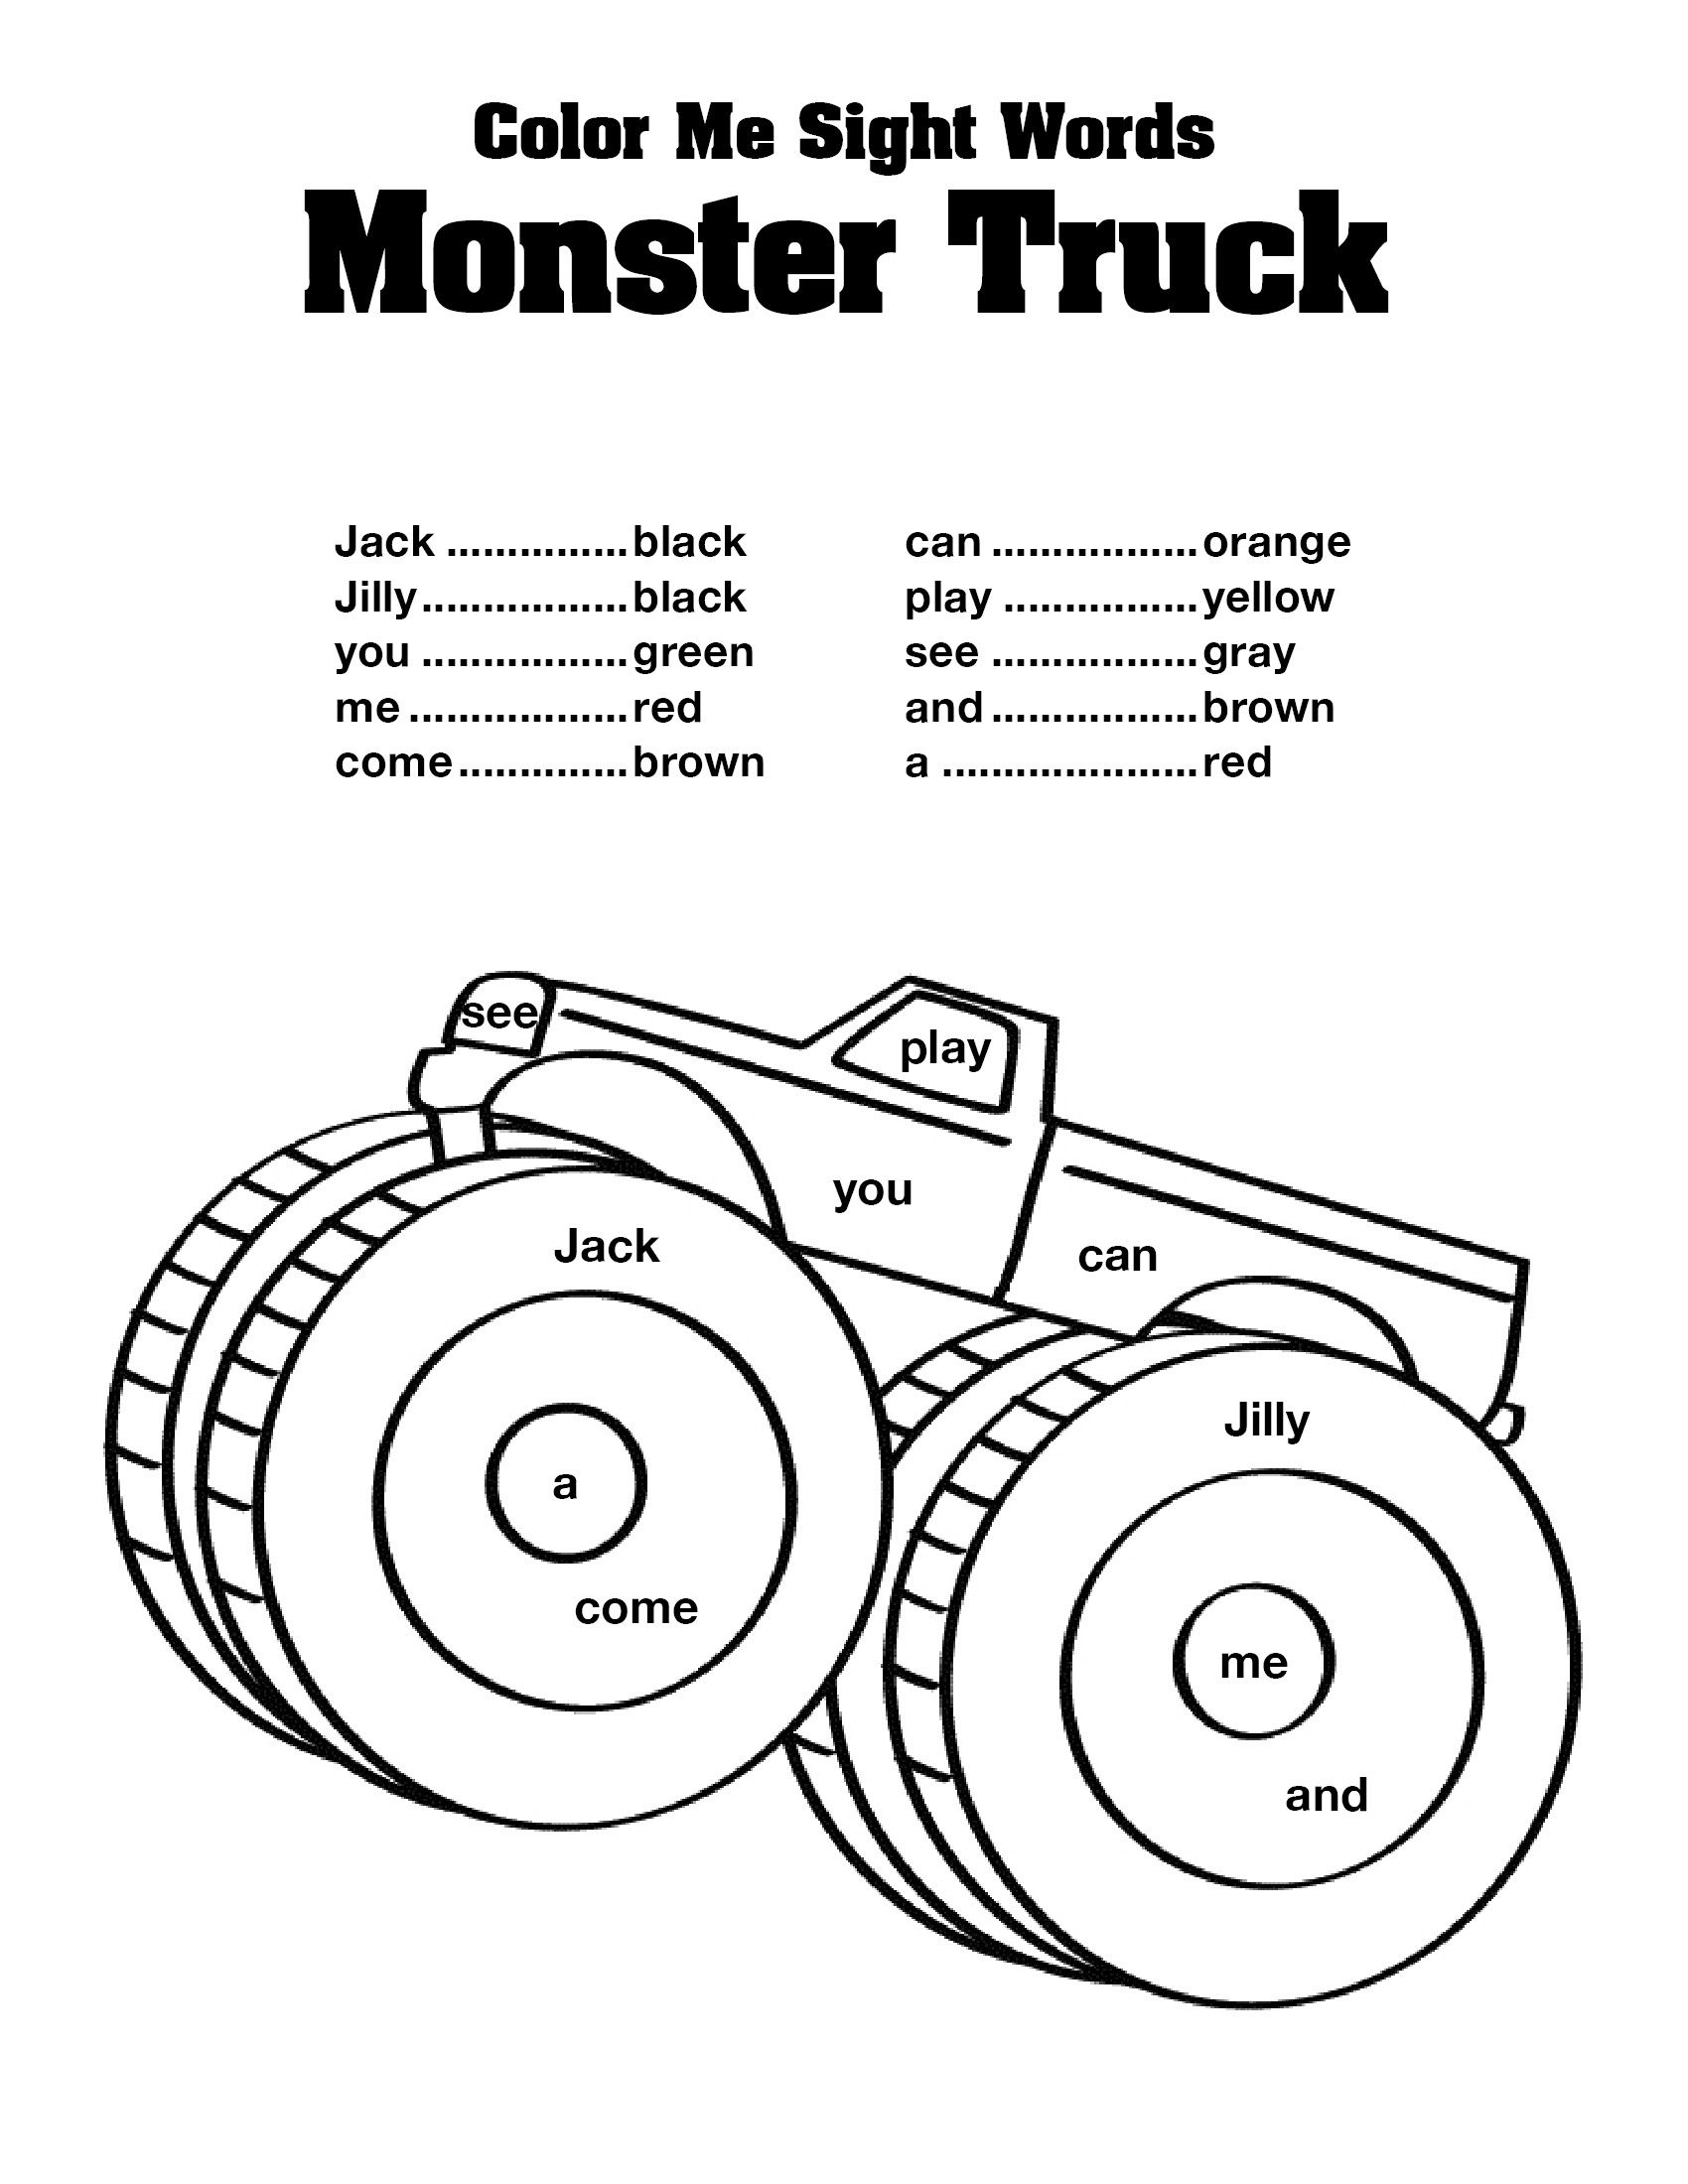 Color by Sight Word! | Sight words kindergarten, The ... |Sight Word Coloring Page Chameleon